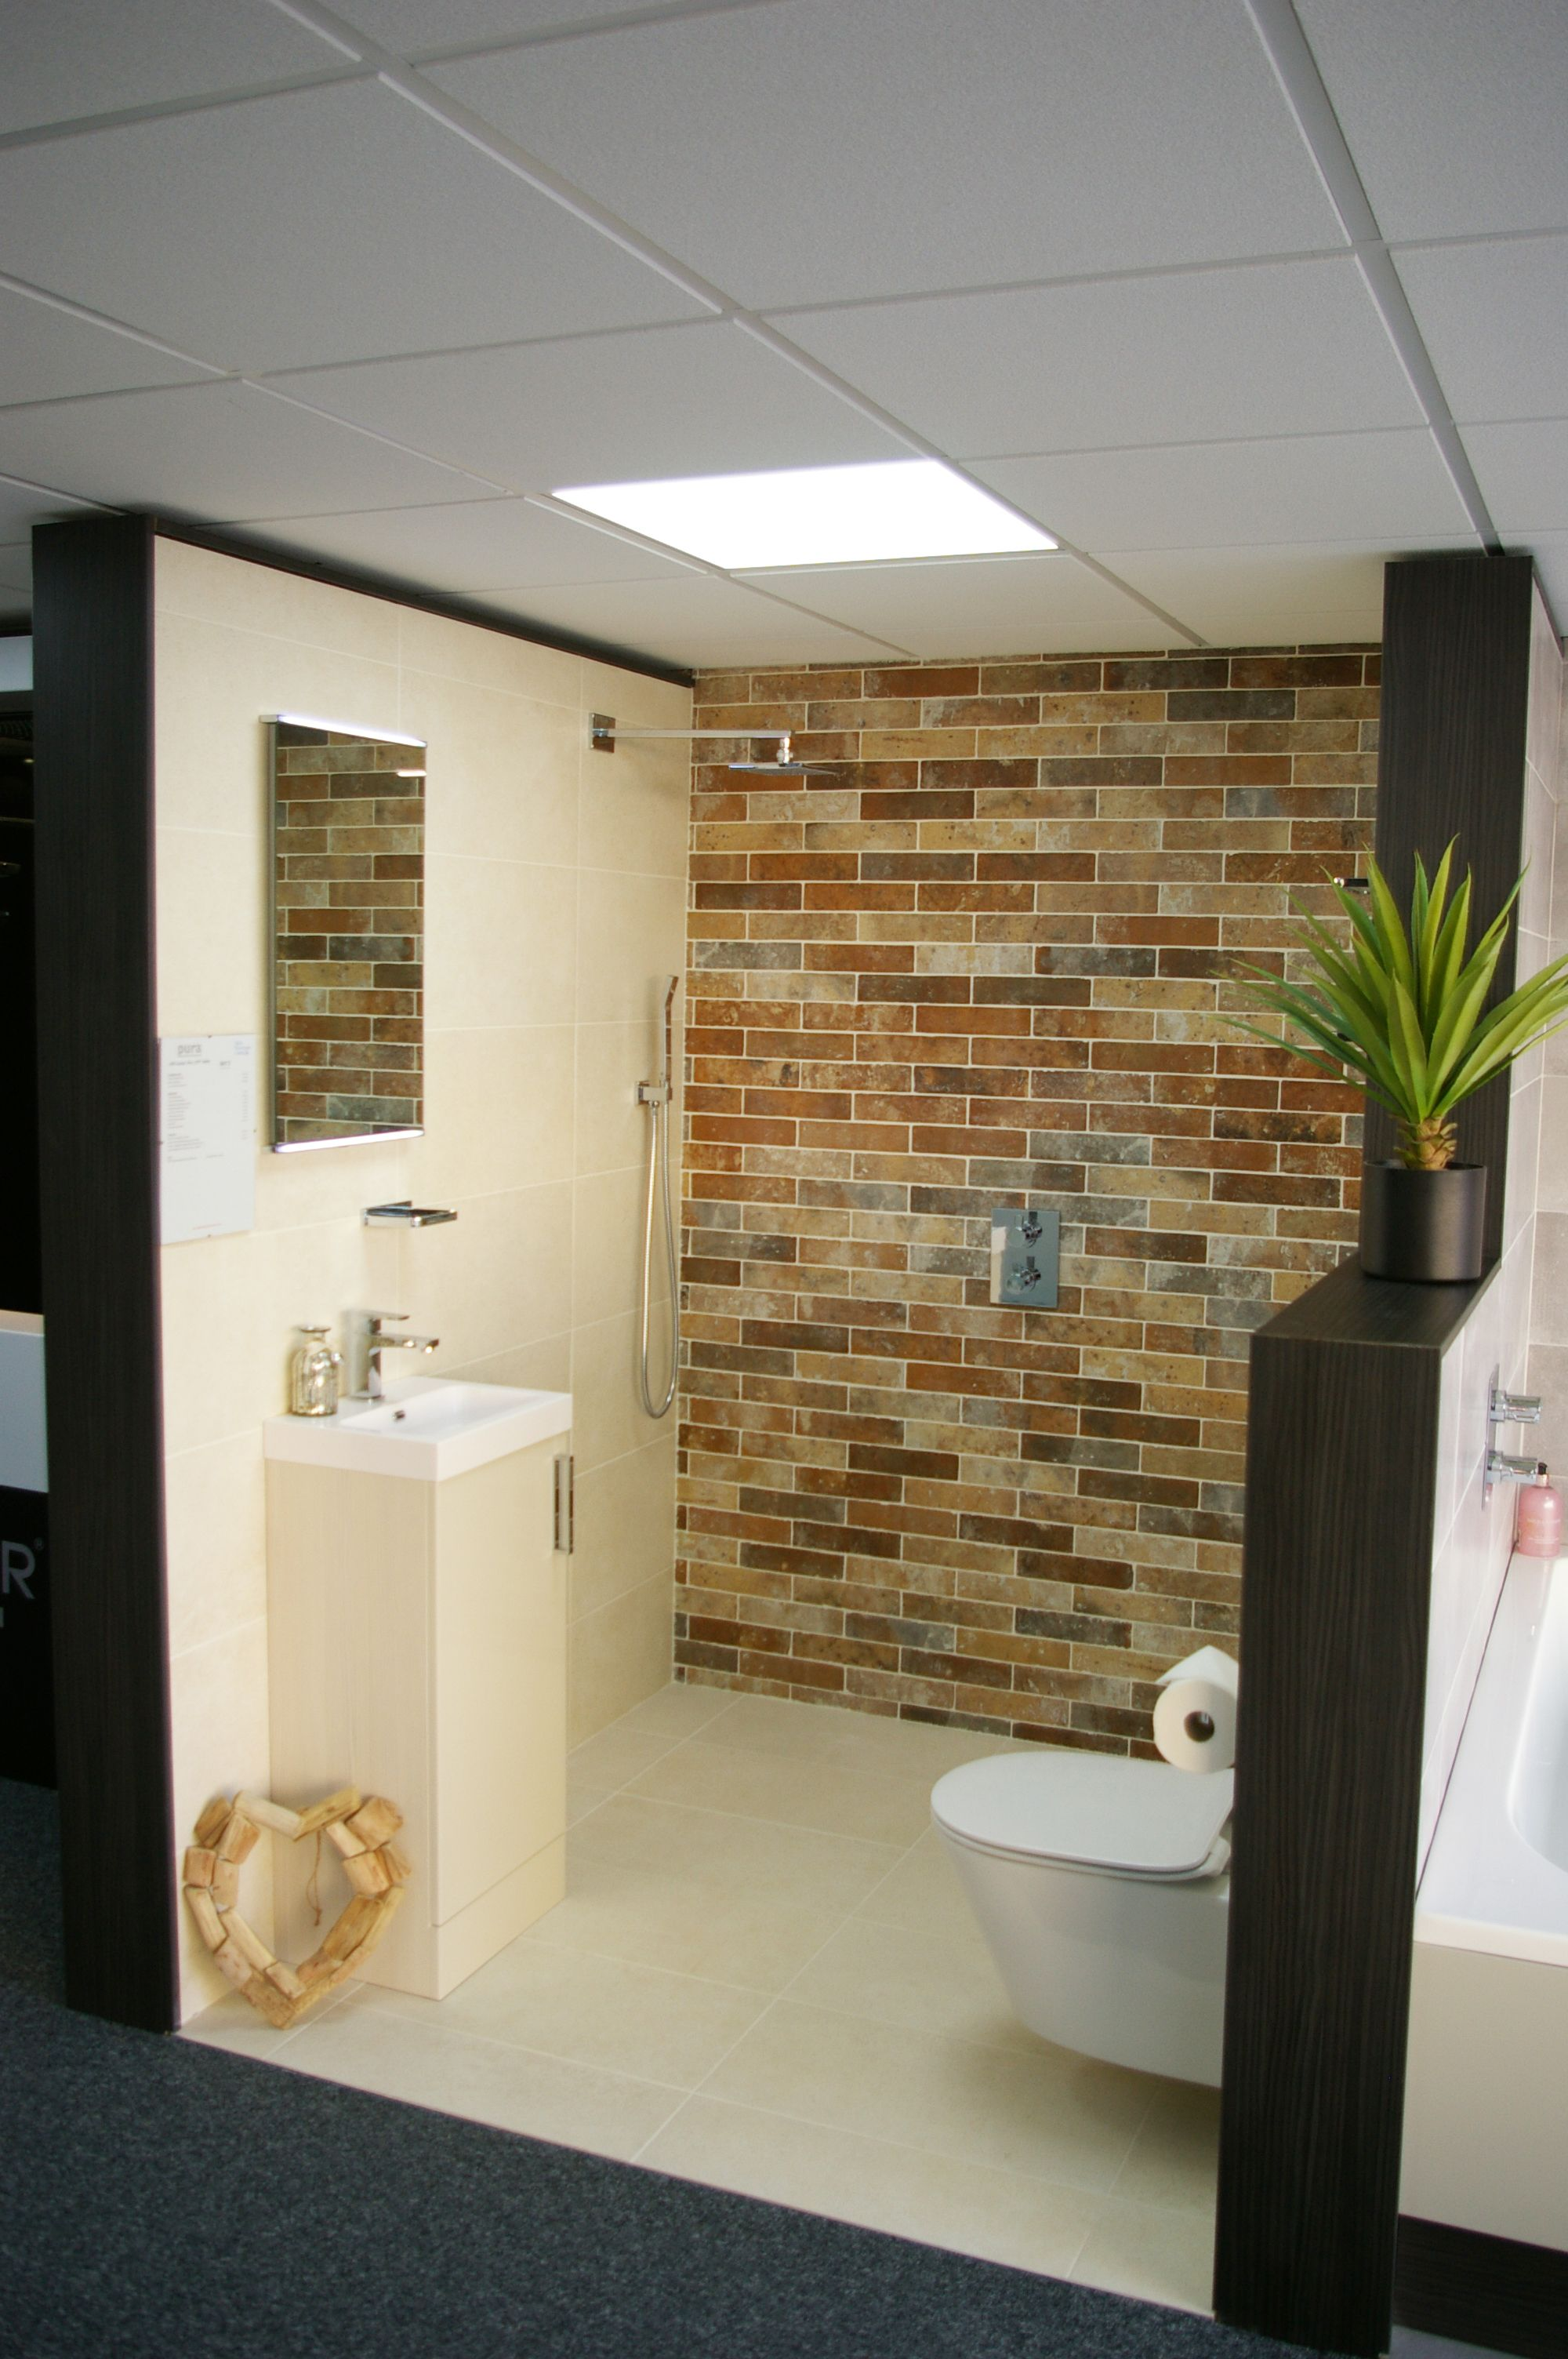 More extra hot news! Check out our displays in Ware Bathroom Centre ...